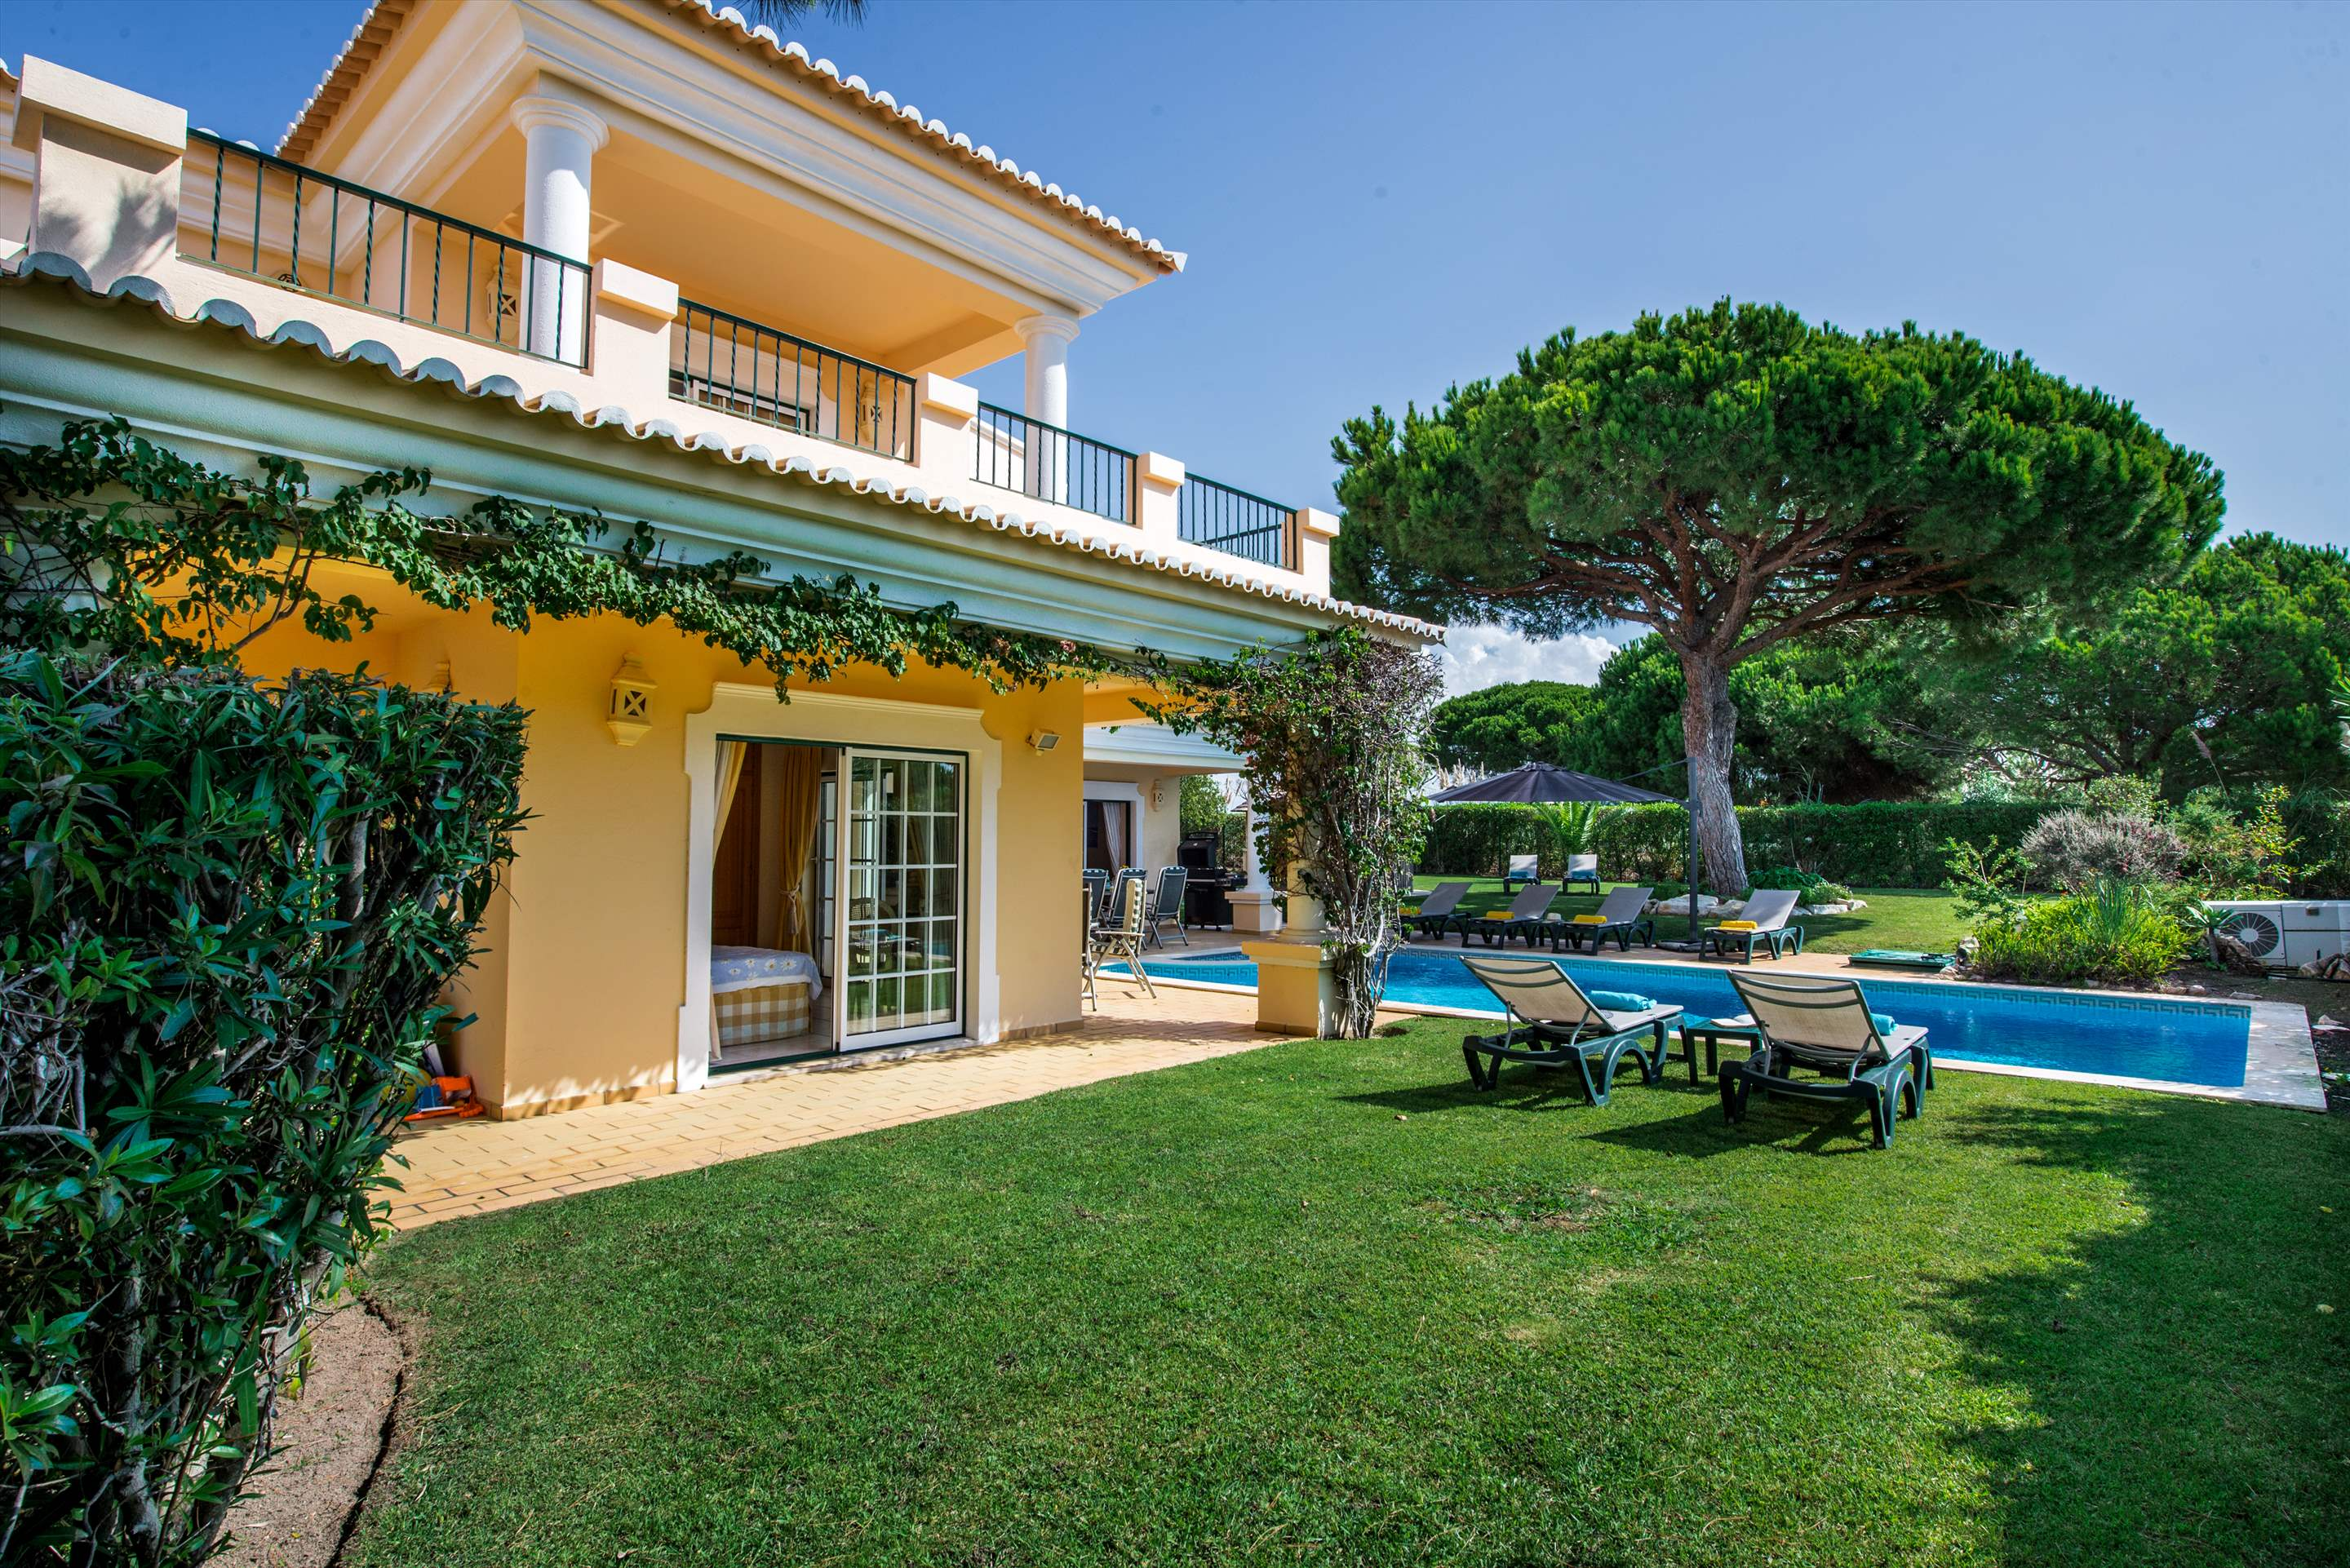 Casa da Encosta, 4 bedroom villa in Vale do Lobo, Algarve Photo #26